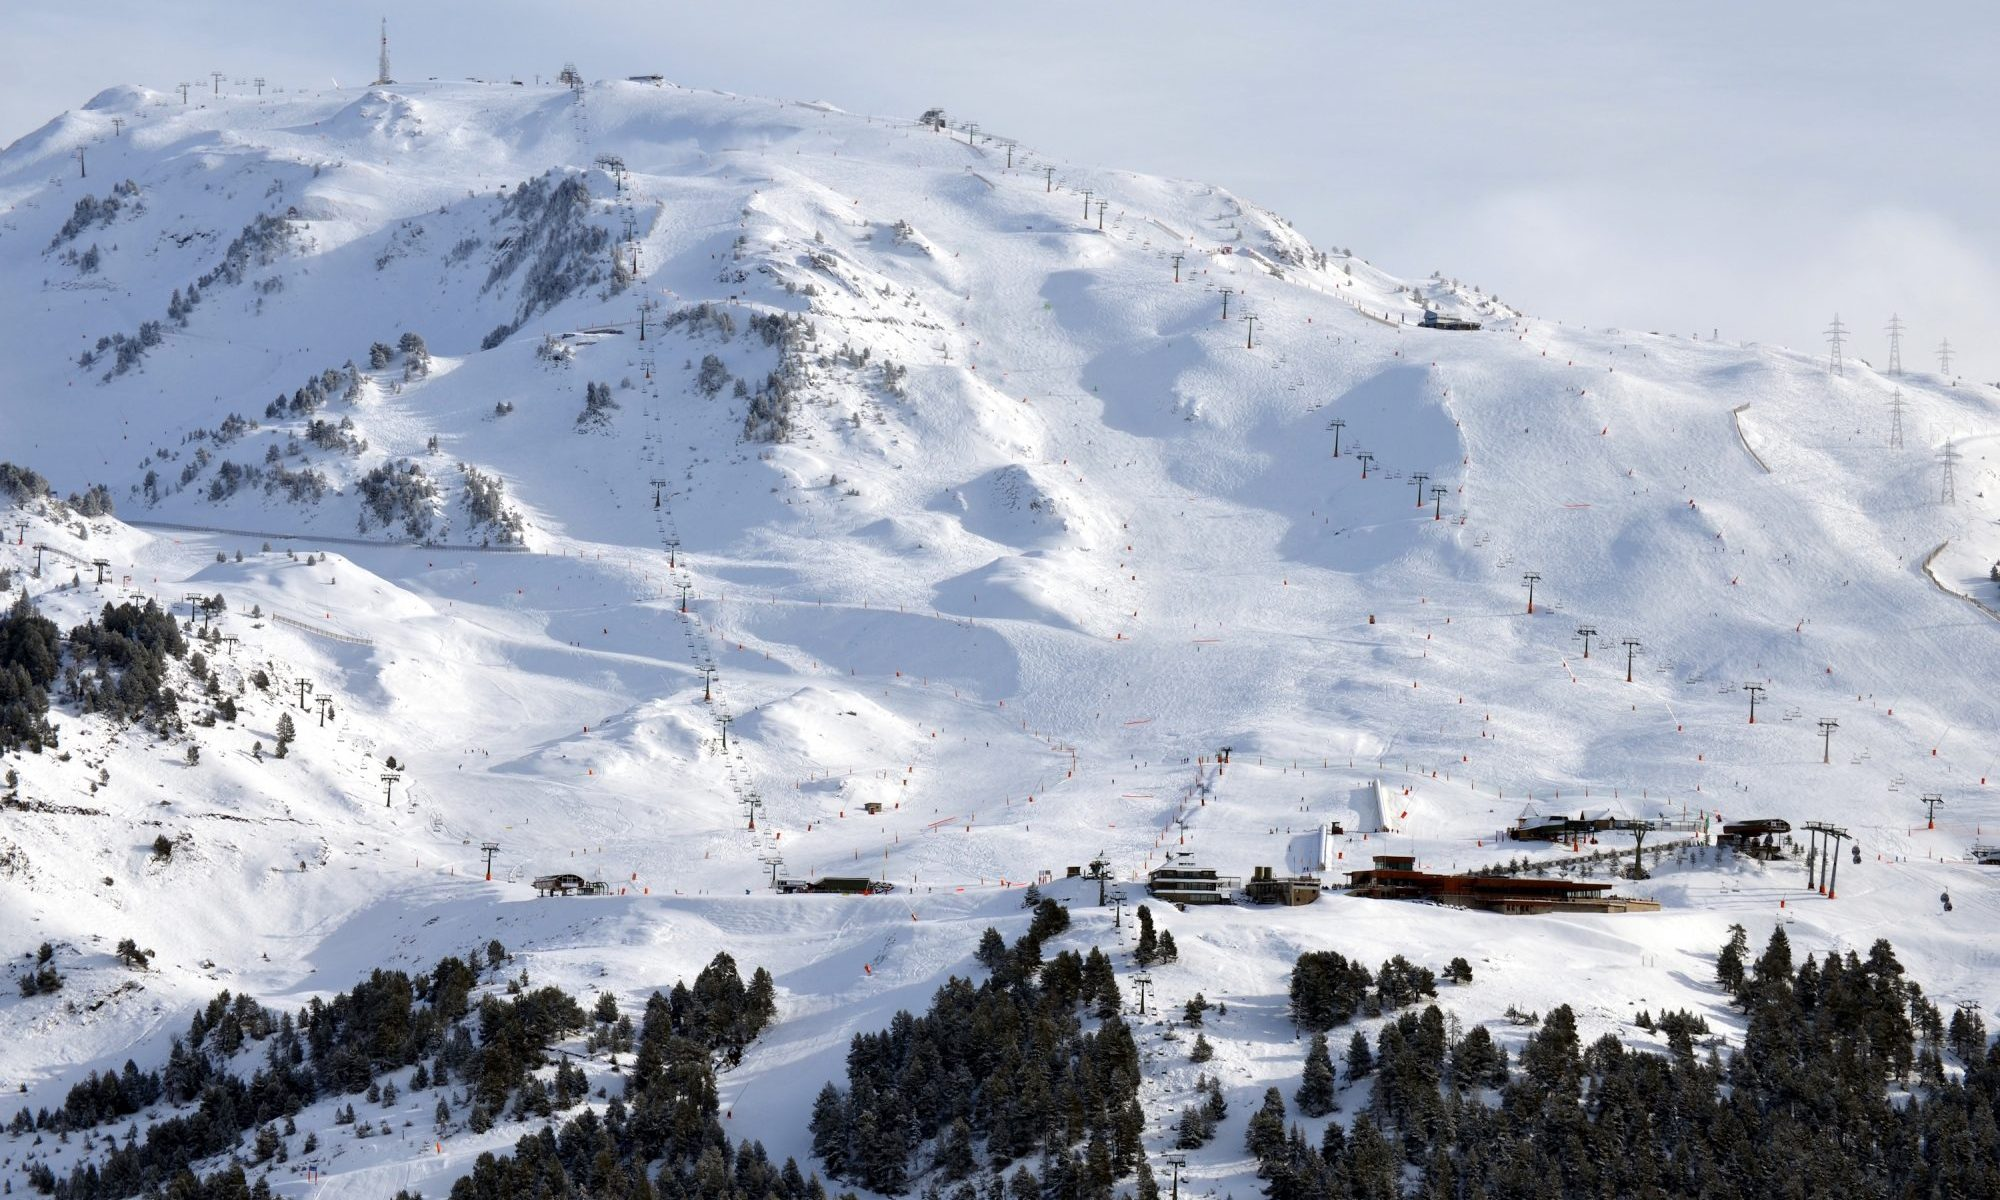 Baqueira Beret photo. Baqueira Beret has closed its third best season in the decade.